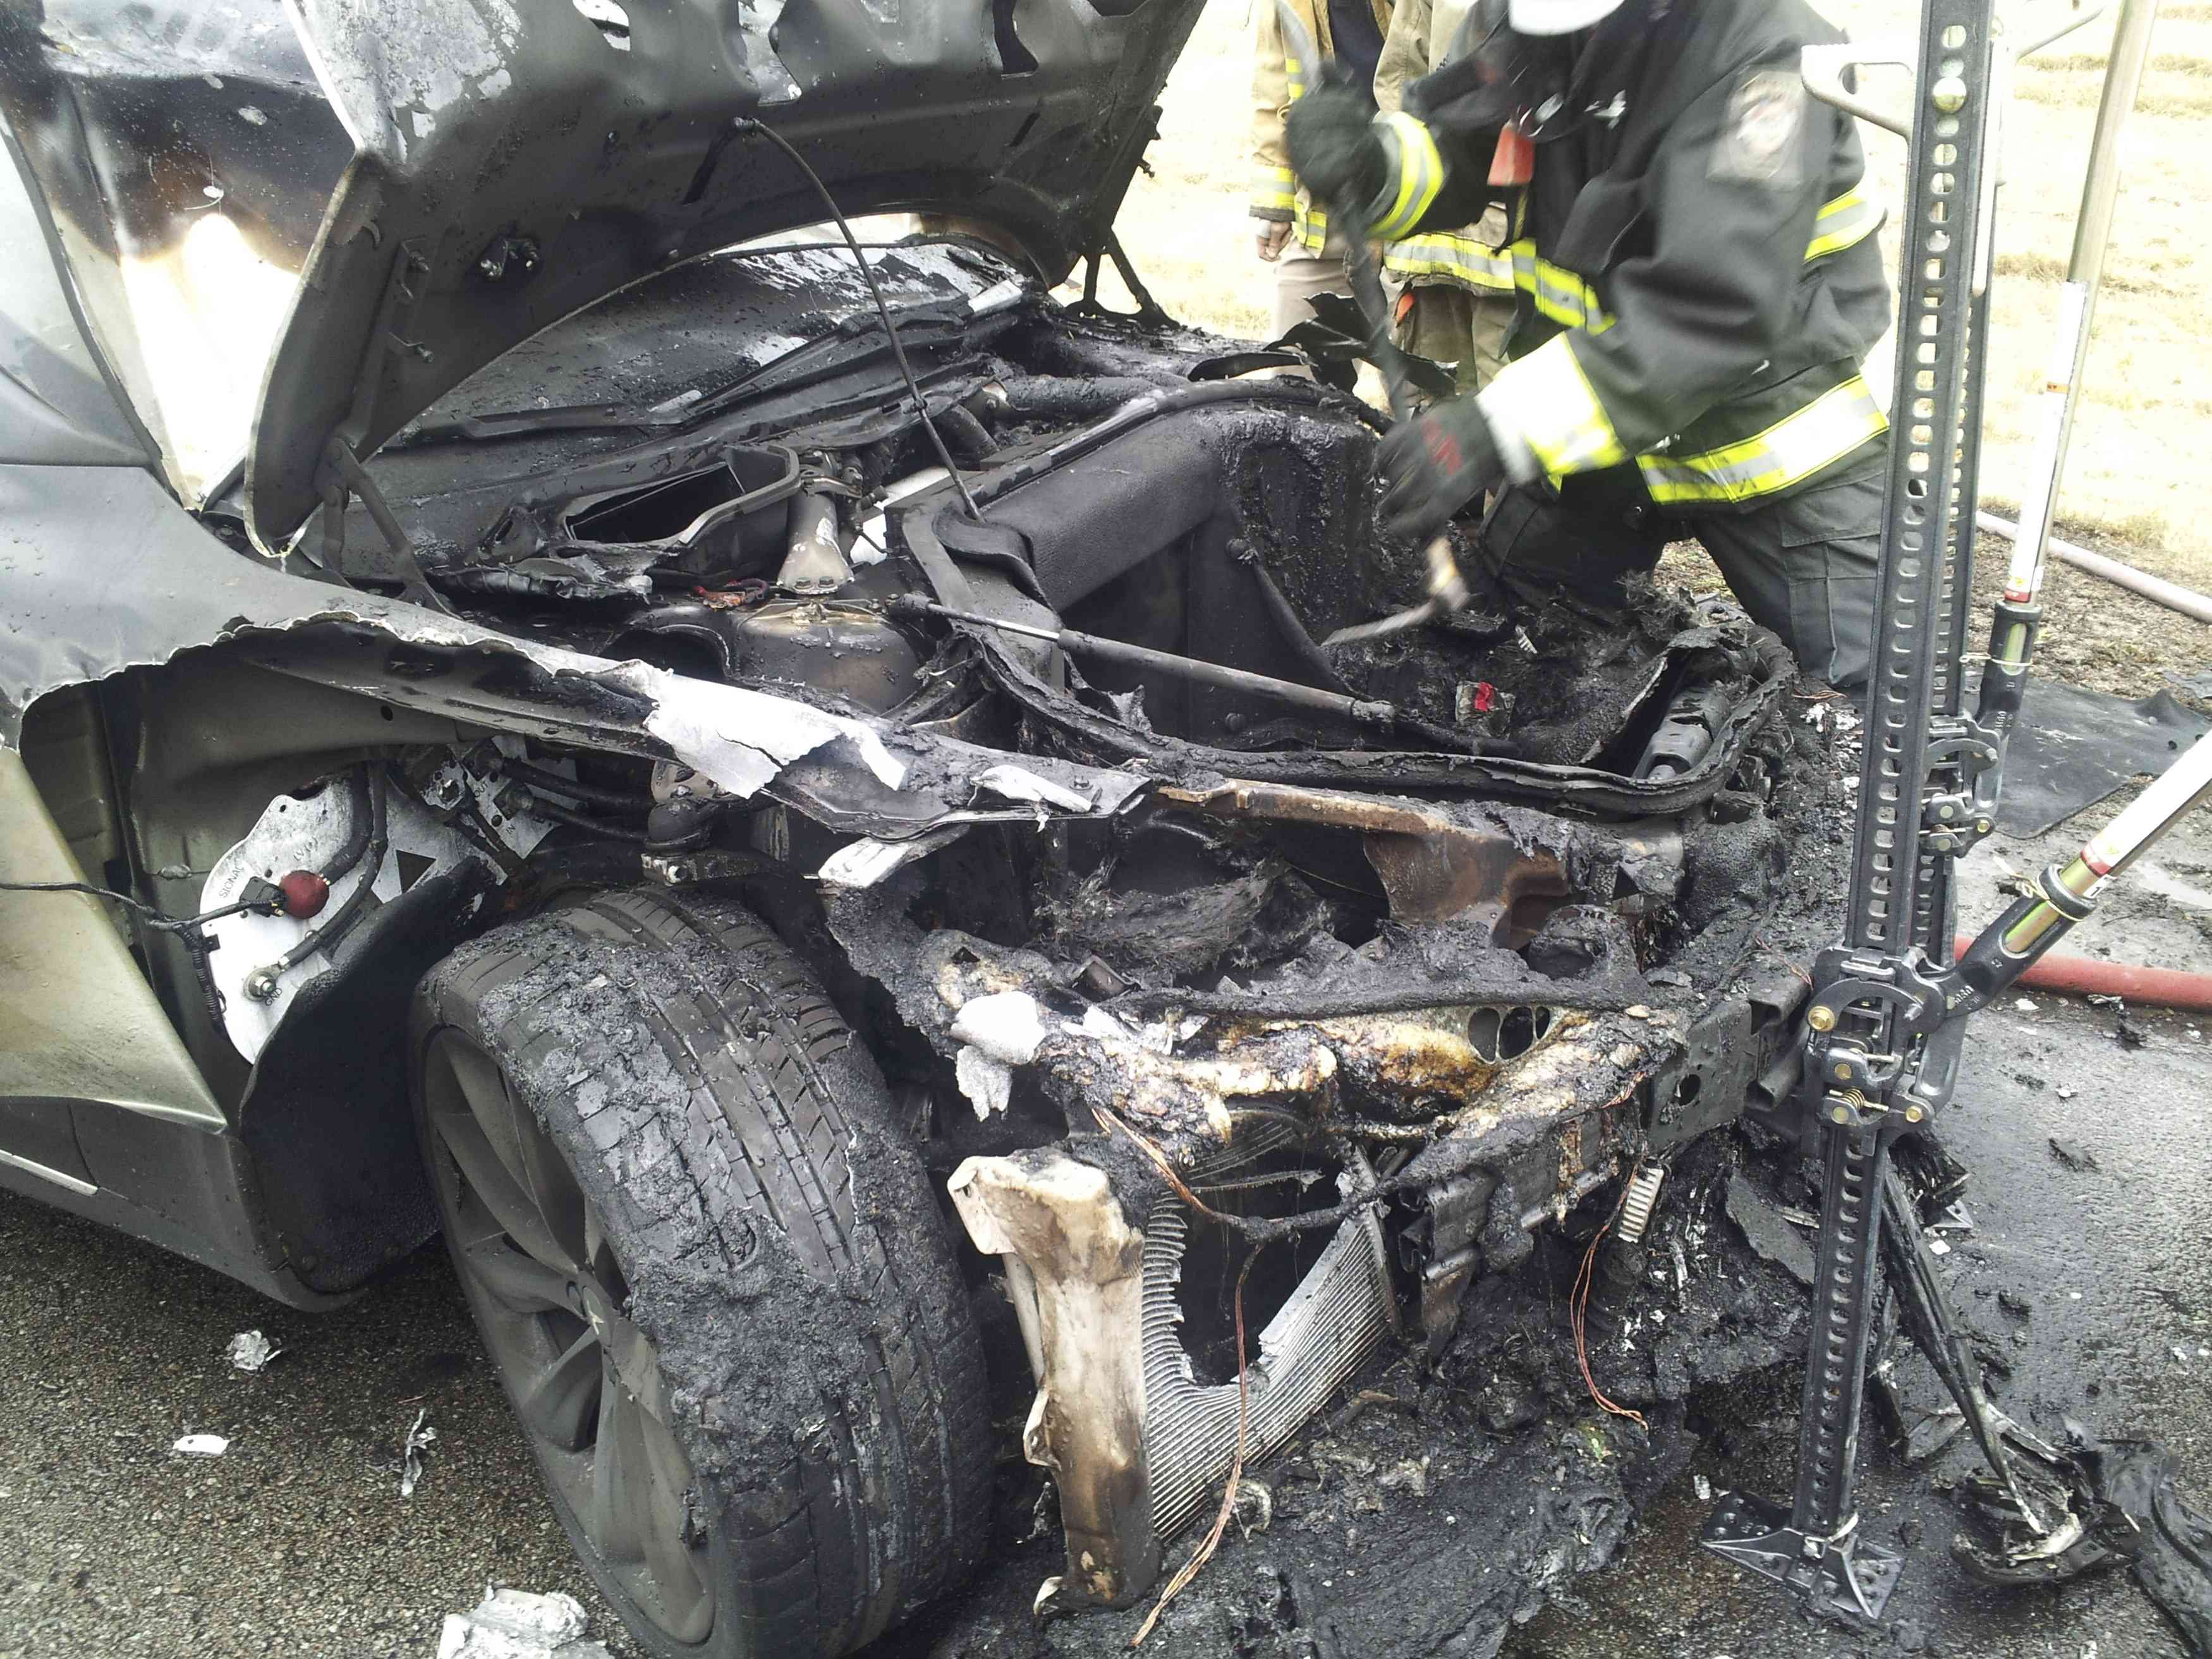 A Telsa Model S automobile destroyed by a fire is seen in a handout picture from the Tennessee Highway Patrol taken in Smyrna, Tenn., Nov. 6, 2013. It's the third fire in six weeks for a Tesla Model S electric car.